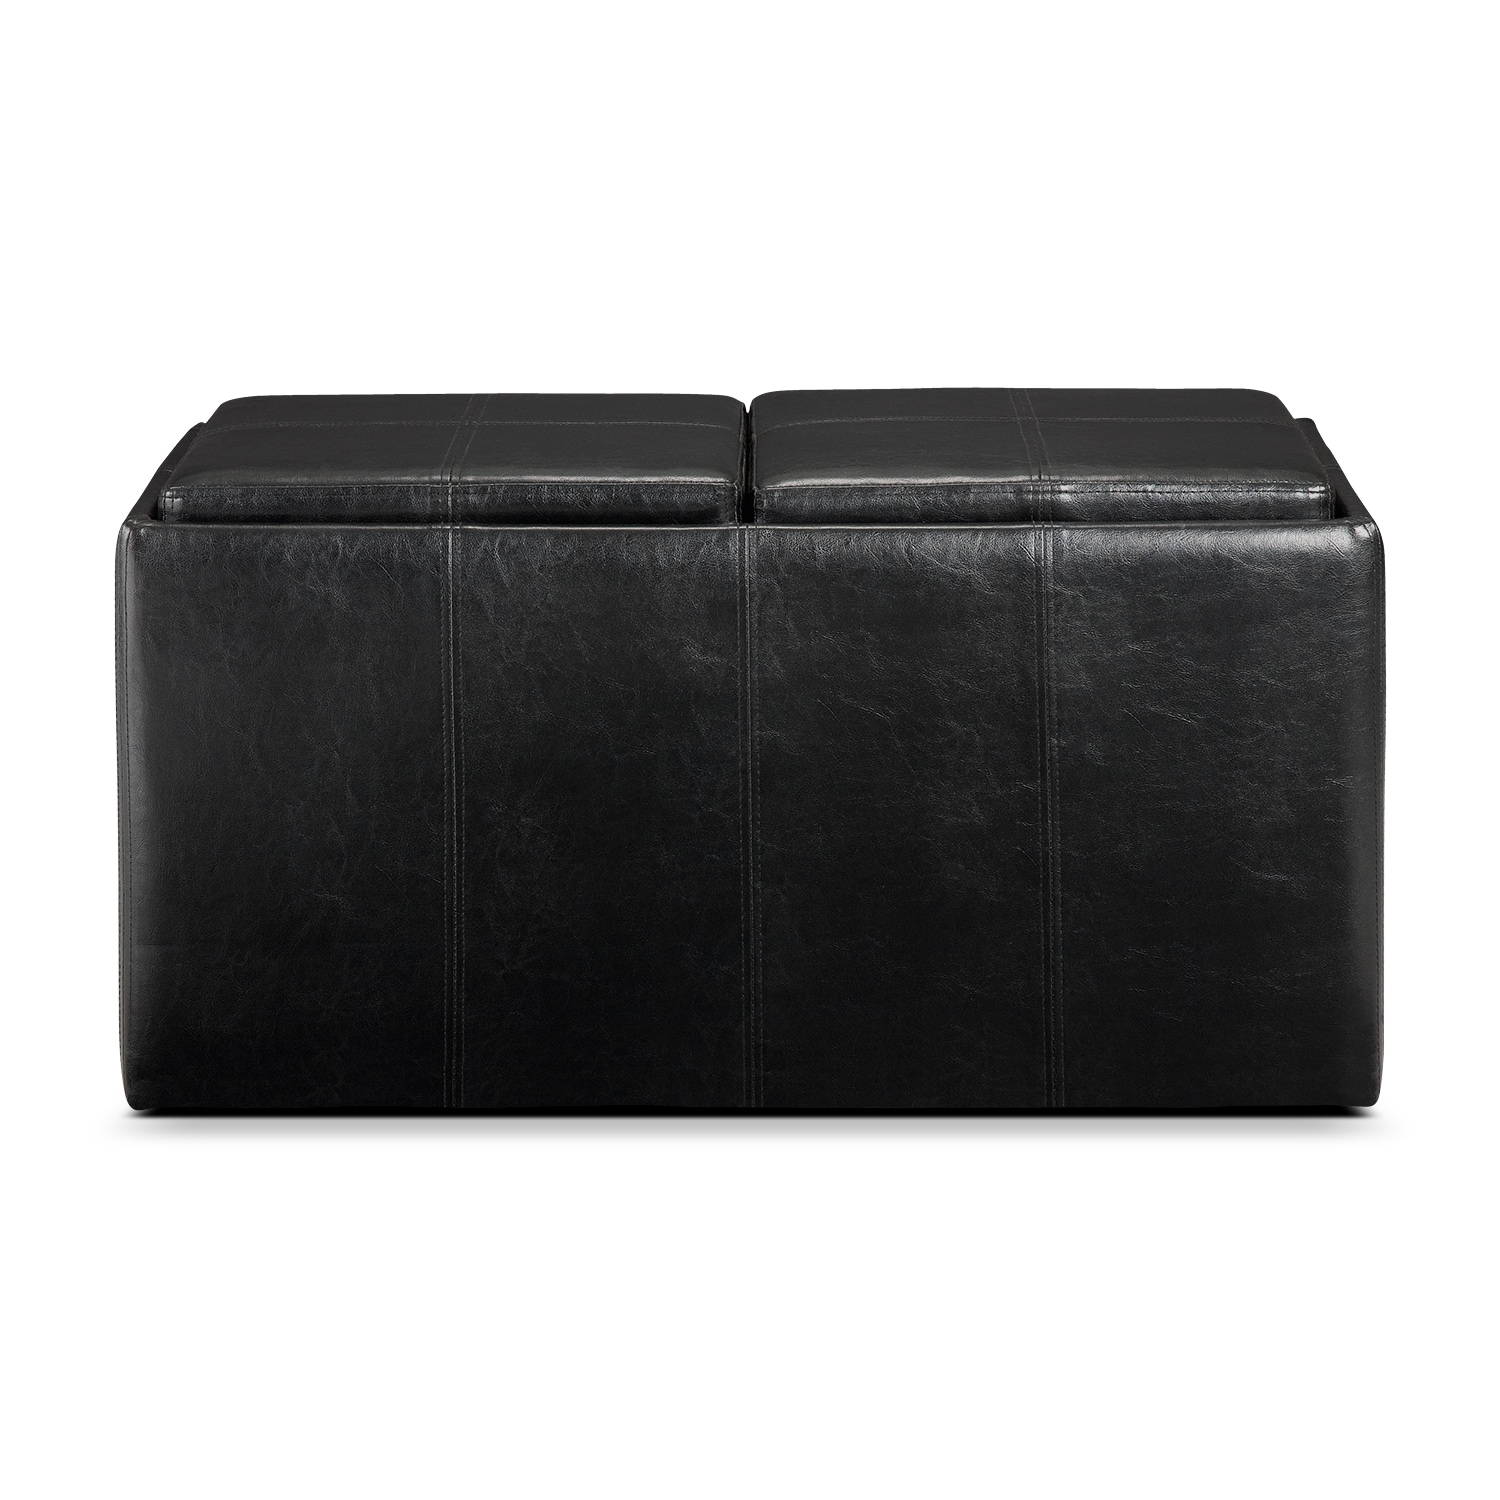 Click to change image. - Tiffany 3-Piece Storage Ottoman With Trays - Black Value City